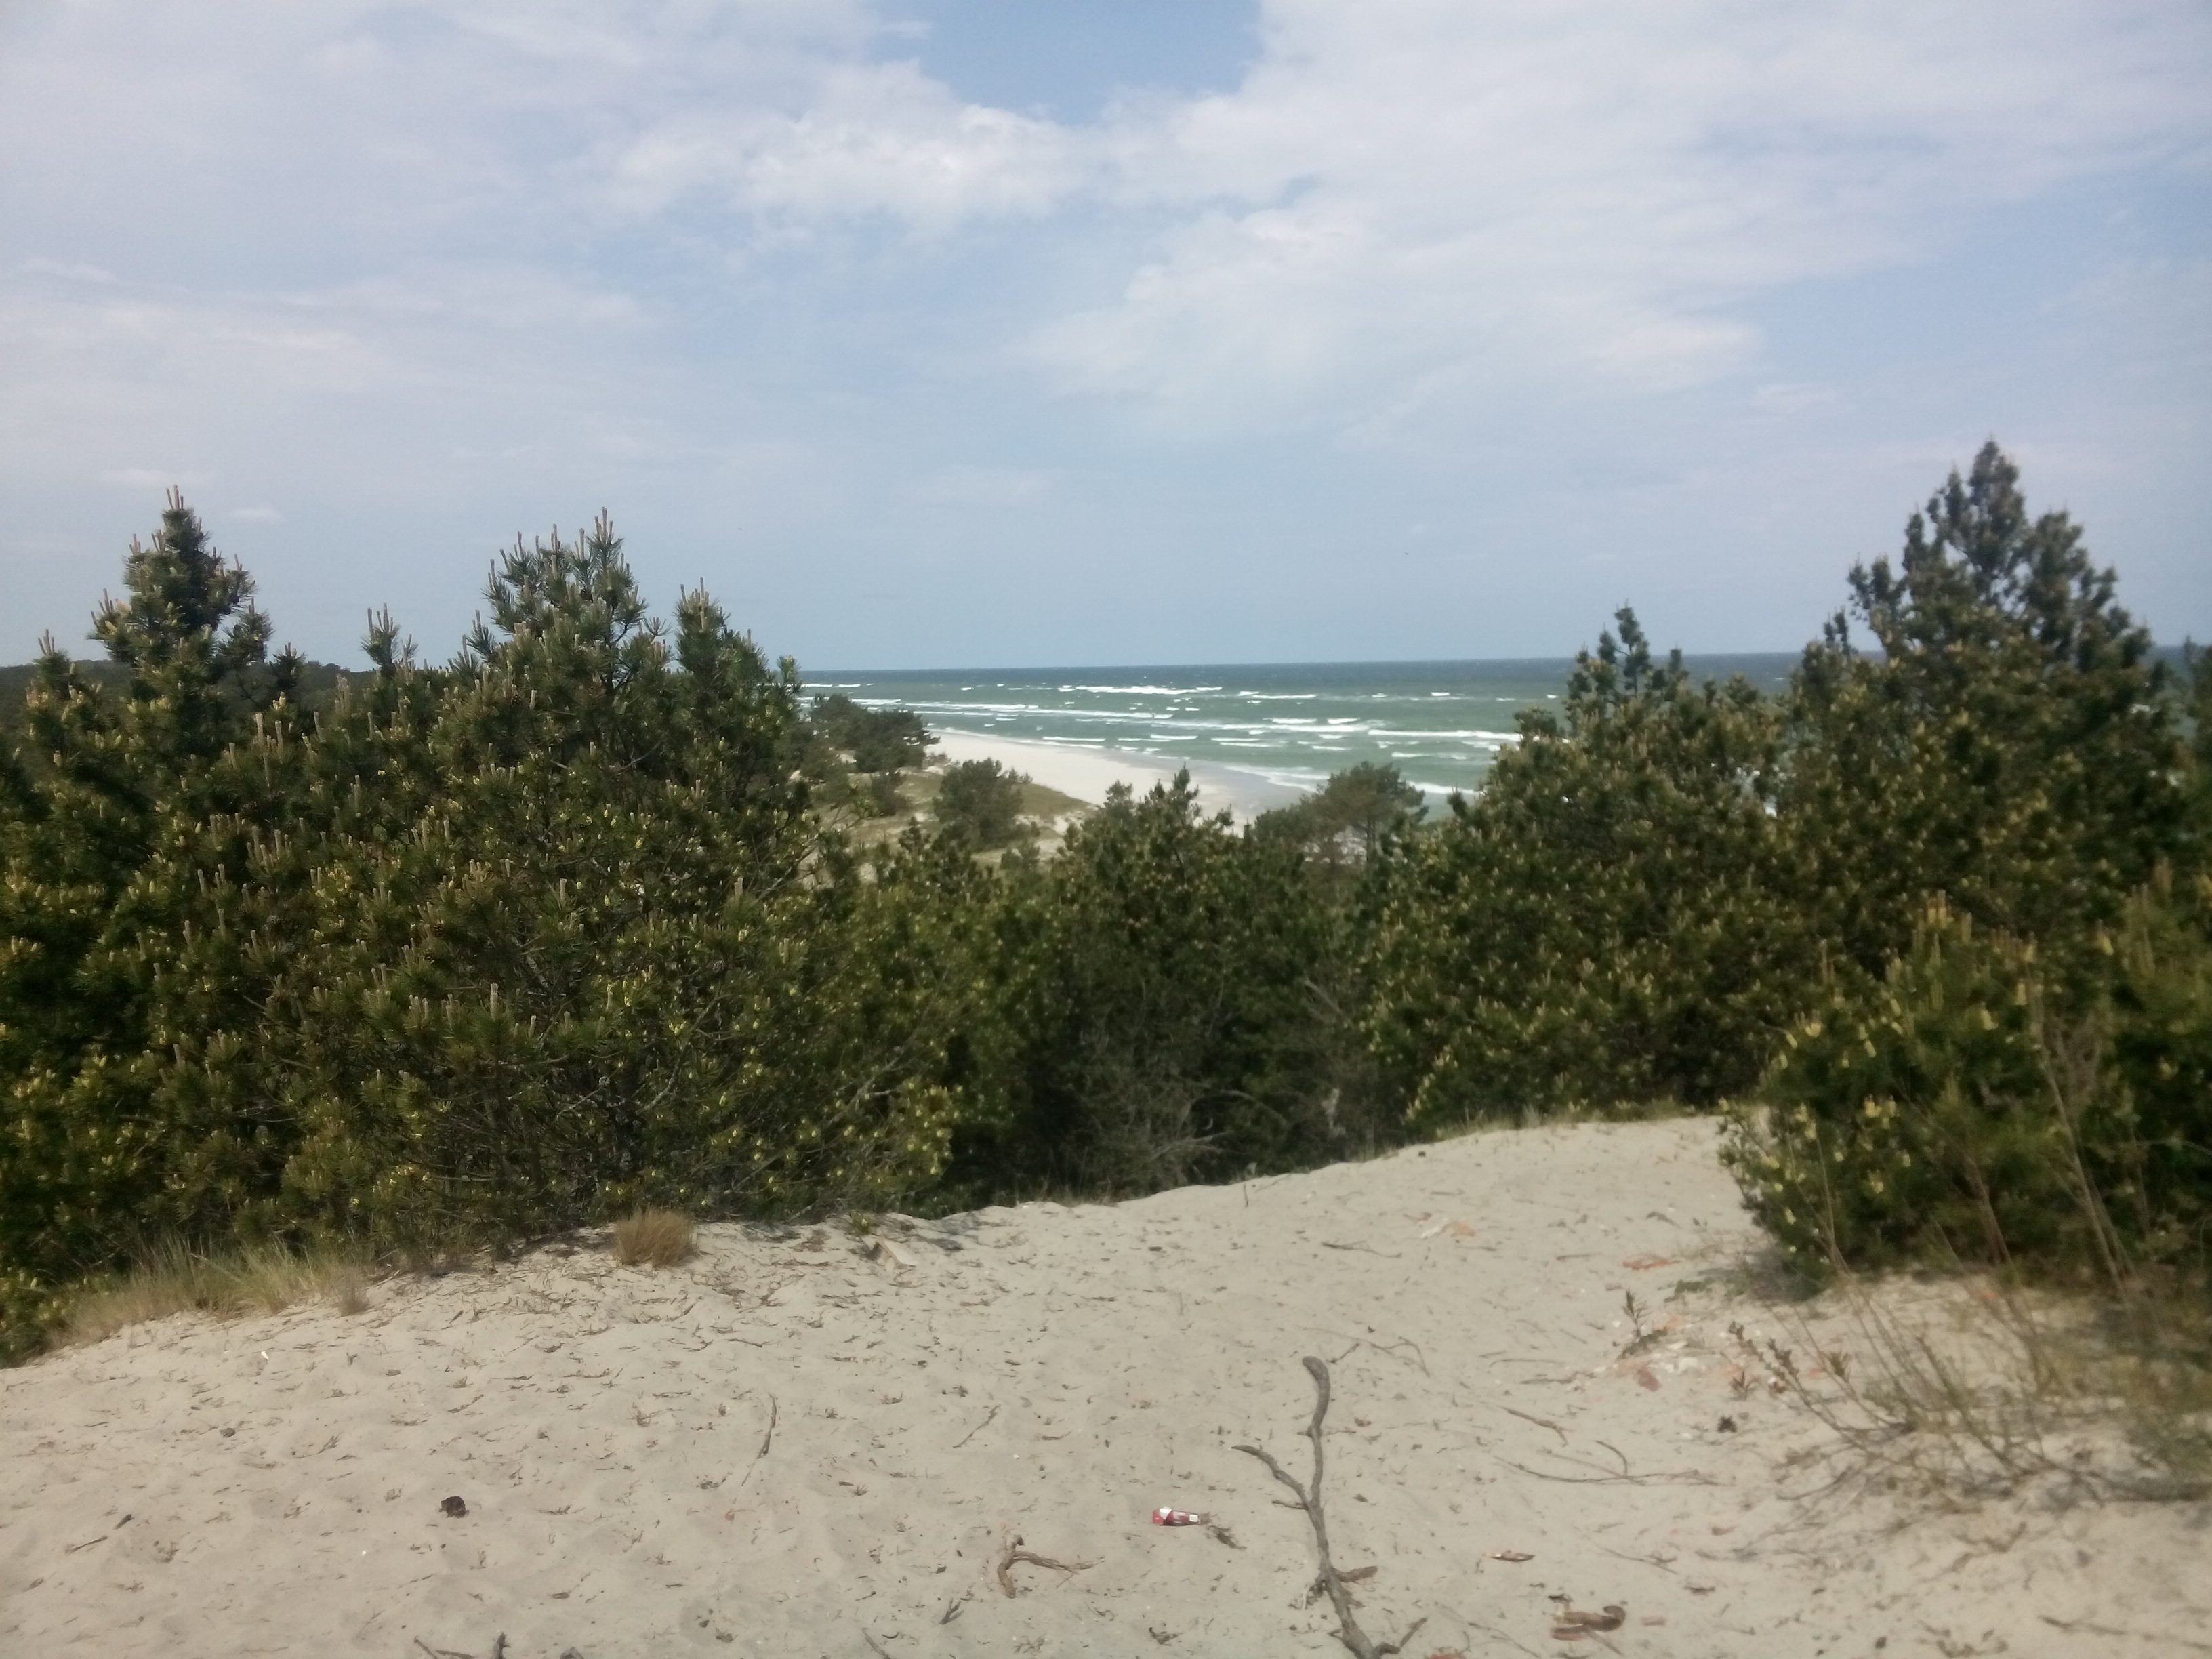 Dunes lined with trees and the sea in the background